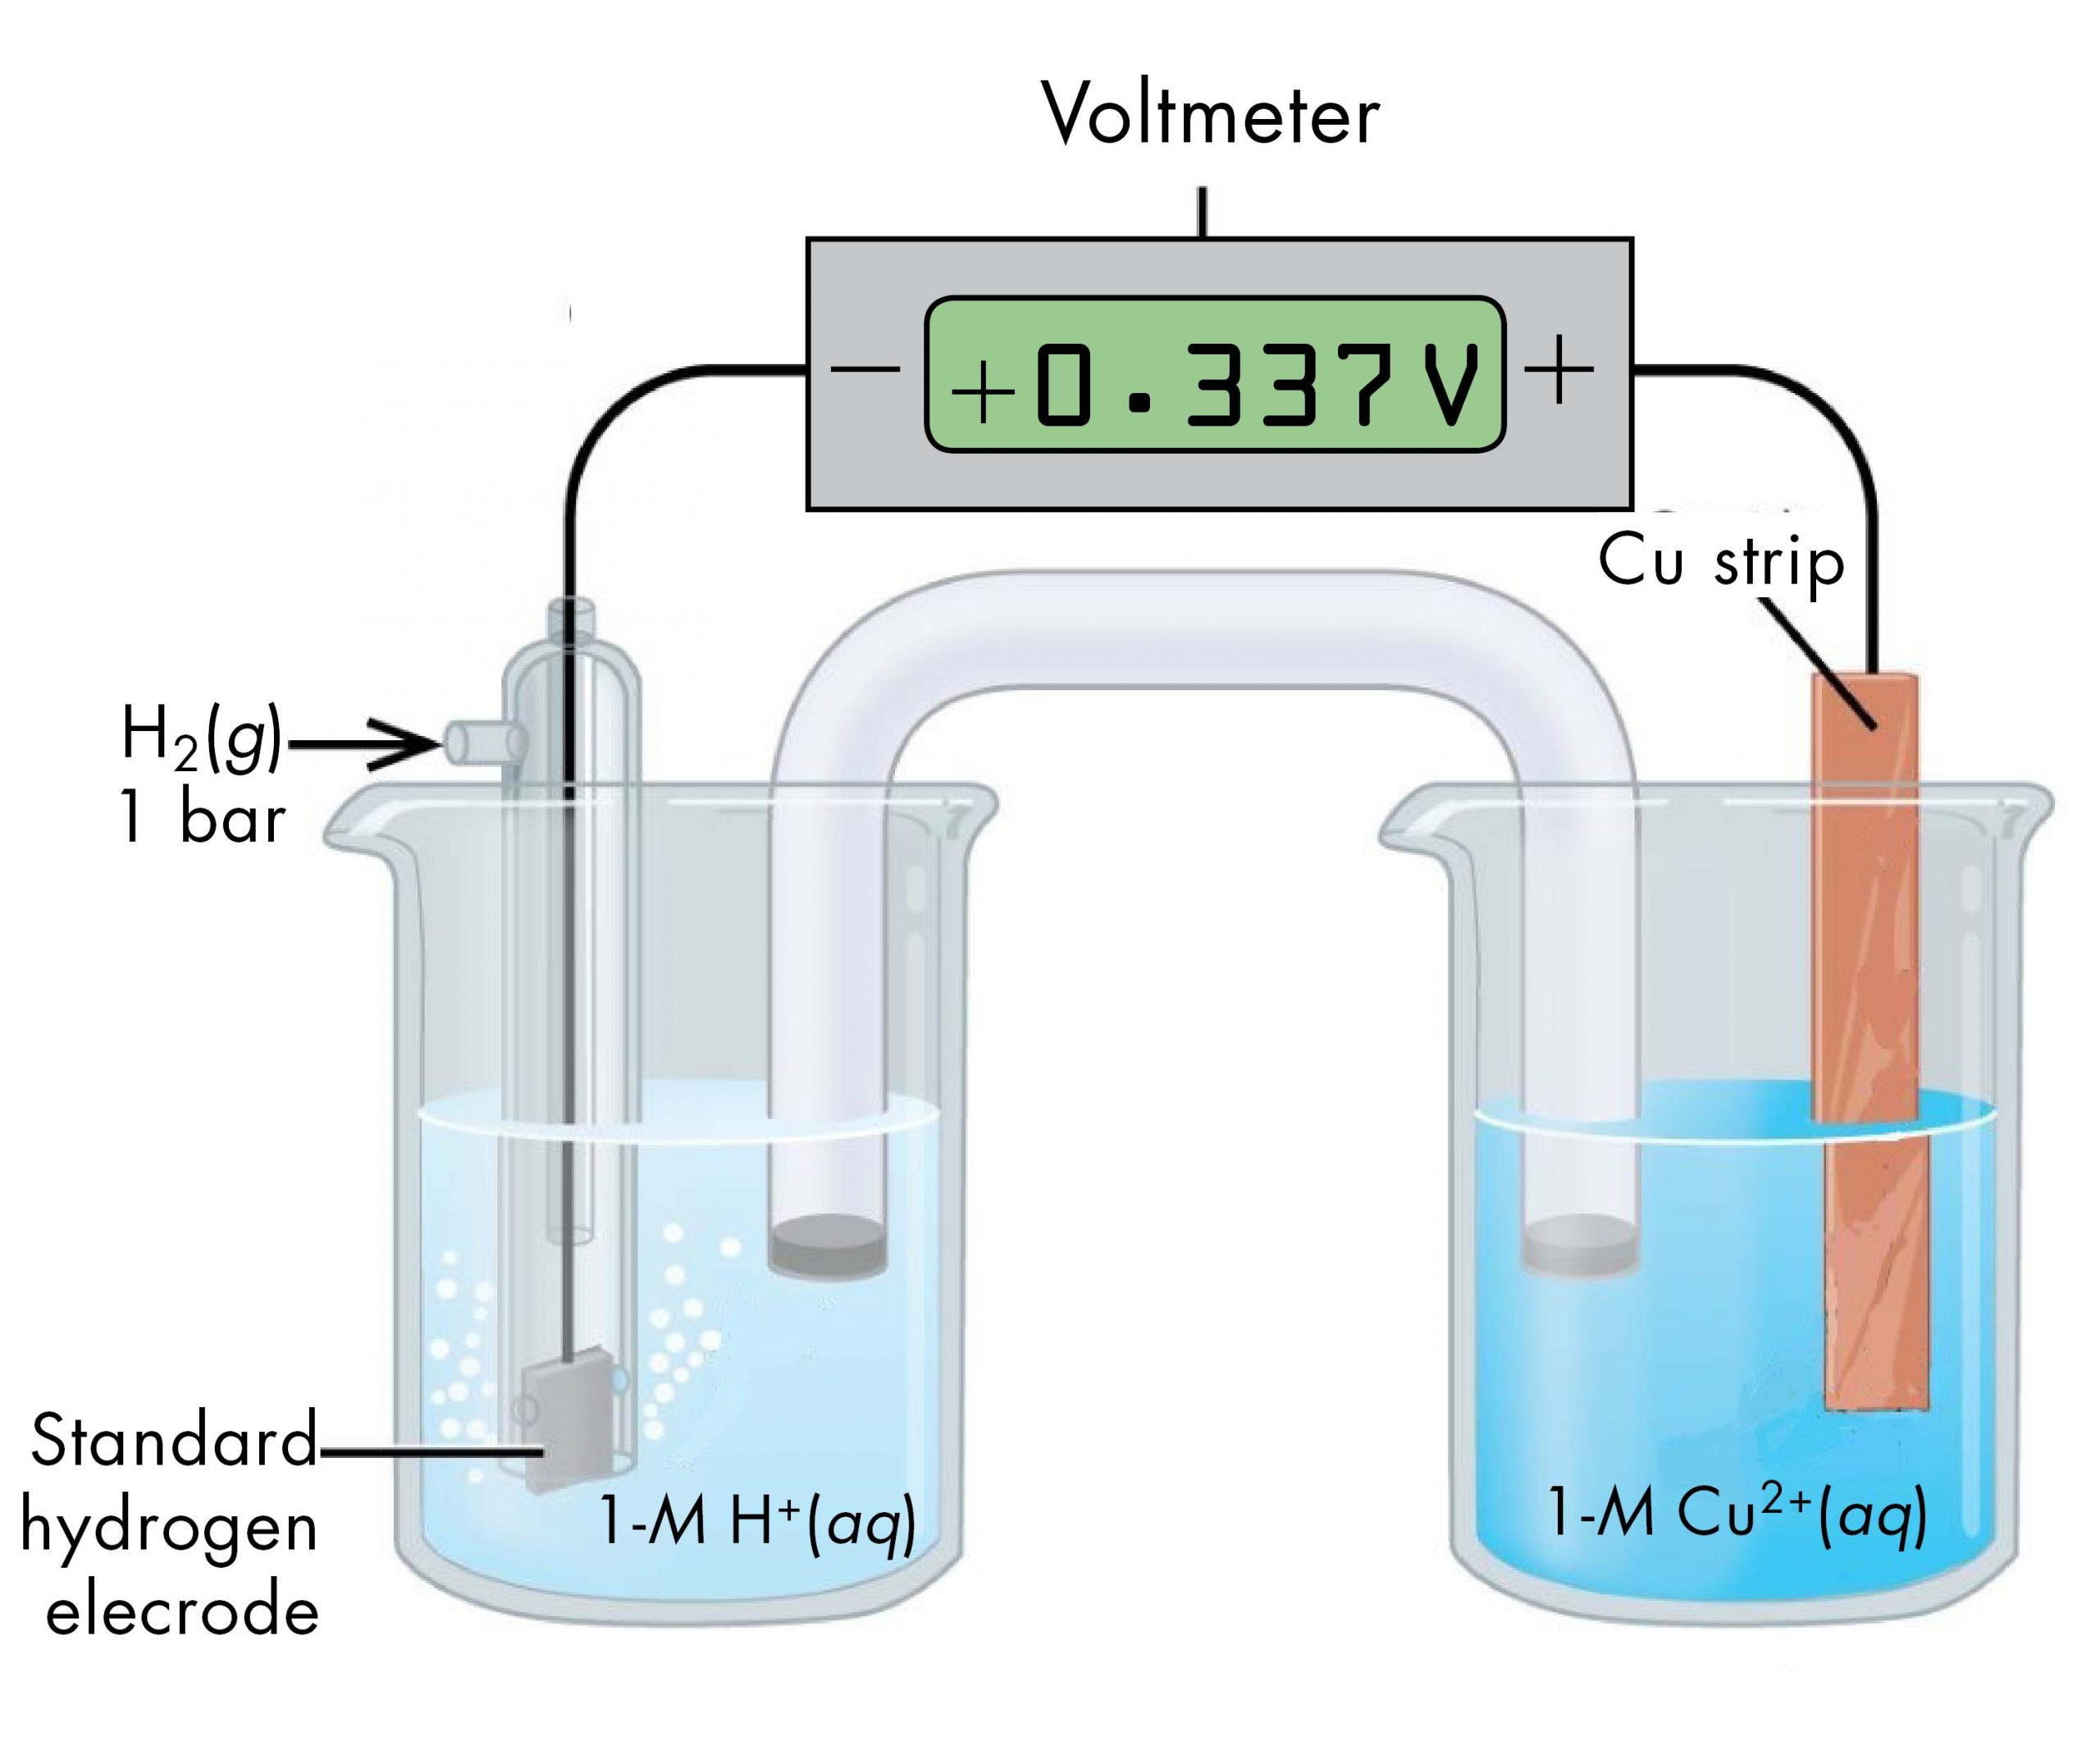 """This figure contains a diagram of an electrochemical cell. Two beakers are shown. Each is just over half full. The beaker on the left contains a clear, colorless solution and is labeled below as """"1 M H superscript plus."""" The beaker on the right contains a blue solution and is labeled below as """"1 M C u superscript 2 plus."""" A glass tube in the shape of an inverted U, a salt bridge, connects the two beakers at the center of the diagram. The tube contents are colorless. The ends of the tube are beneath the surface of the solutions in the beakers and a small grey plug is present at each end of the tube. The beaker on the left has a glass tube partially submersed in the liquid. Bubbles are rising from a grey square, labeled """"Standard hydrogen electrode"""", at the bottom of the tube. A black wire extends from the grey square up the interior of the tube through a small port at the top to a rectangle with a digital readout of """"positive 0.337 V"""" which is labeled """"Voltmeter."""" The wire connects to the negative terminal of the voltmeter. A second small port extends out the top of the tube to the left. An arrow points from the left to the port opening. The base of this arrow is labeled """"H subscript 2 ( g ) 1 bar."""" The beaker on the right has an orange-brown strip that is labeled """"C u strip"""" at the top. A wire extends from the top of this strip to the voltmeter, connecting to the positive terminal. The solution in the right beaker is labeled """"1-M H superscript plus."""""""